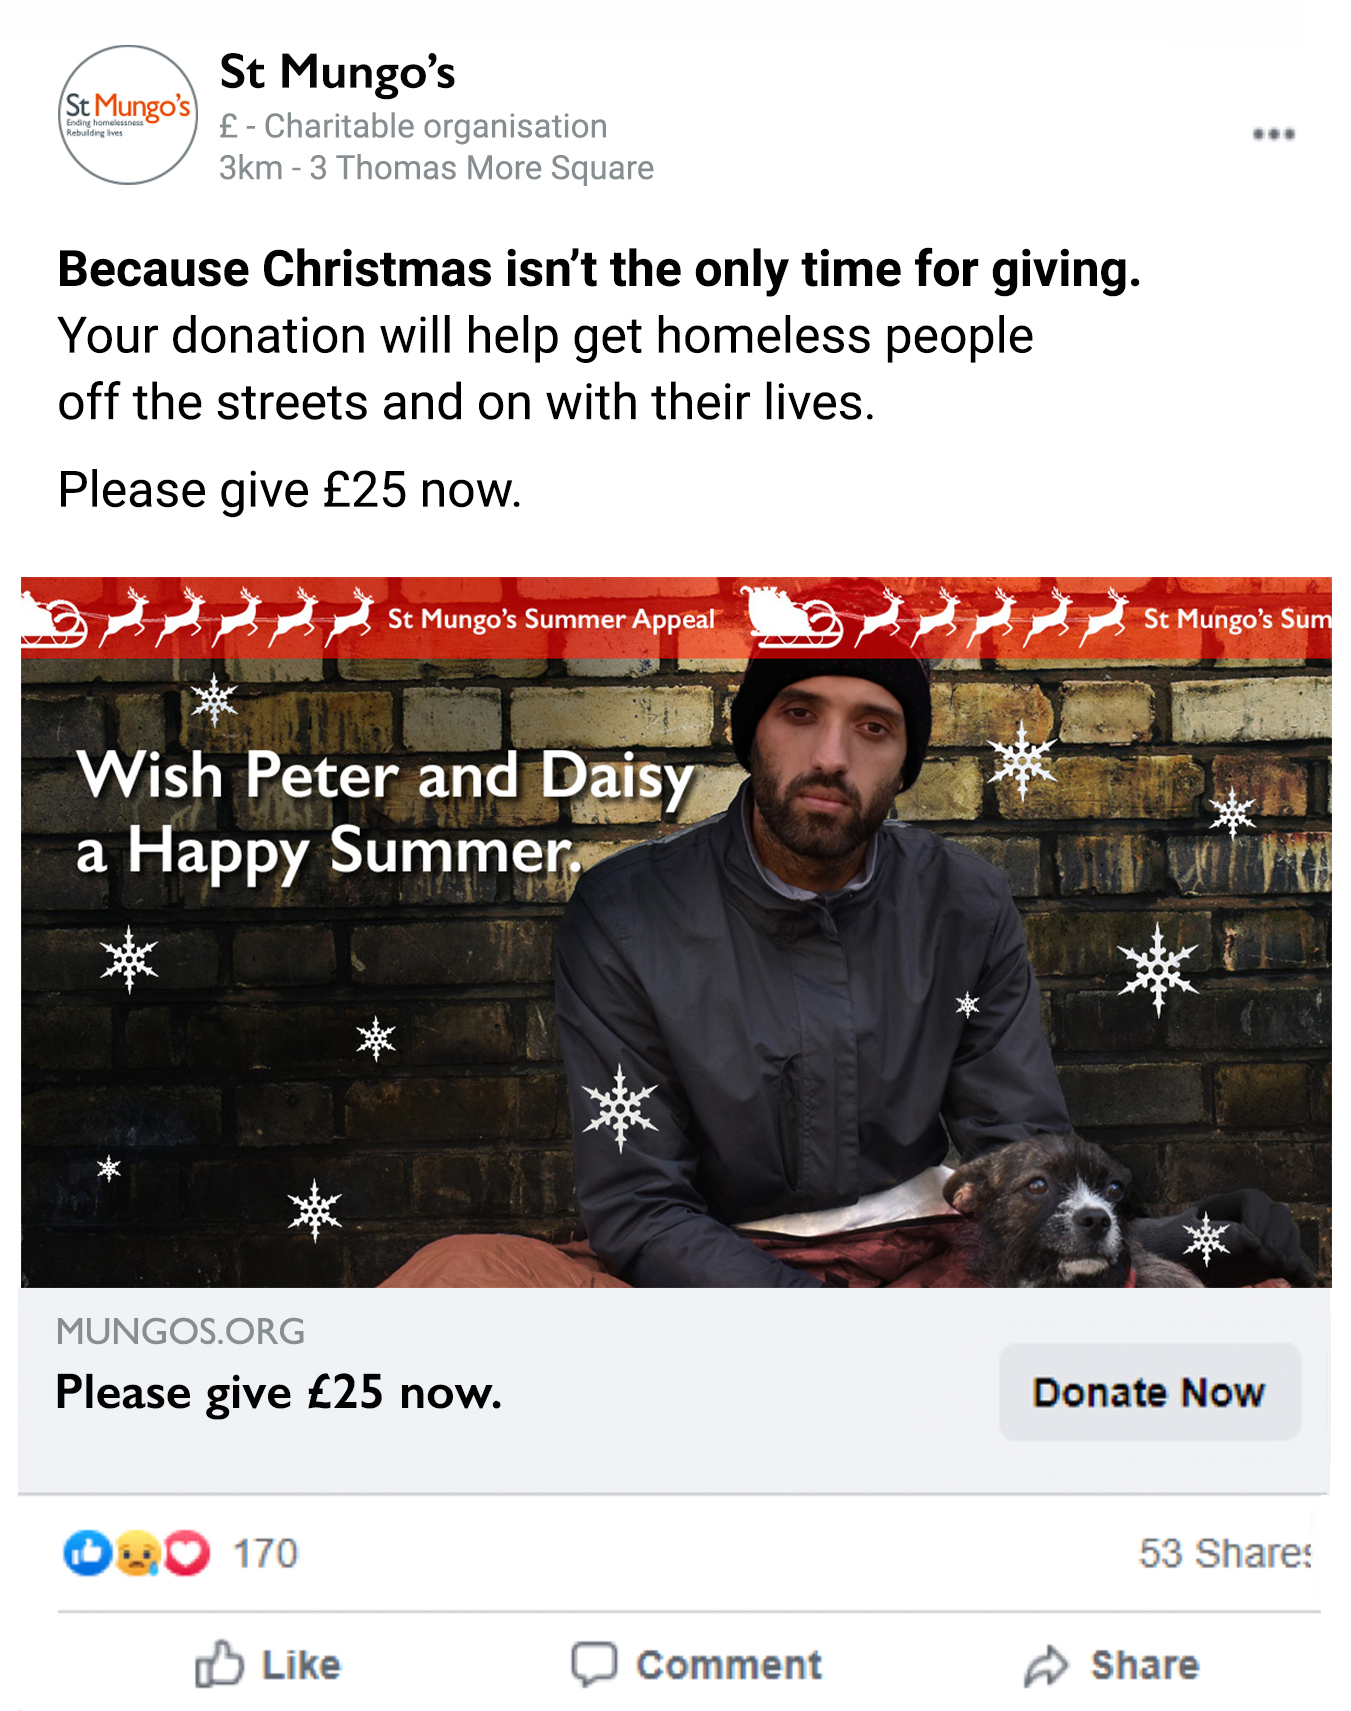 New St Mungo's campaign from Parkhouse tackles Christmas in July